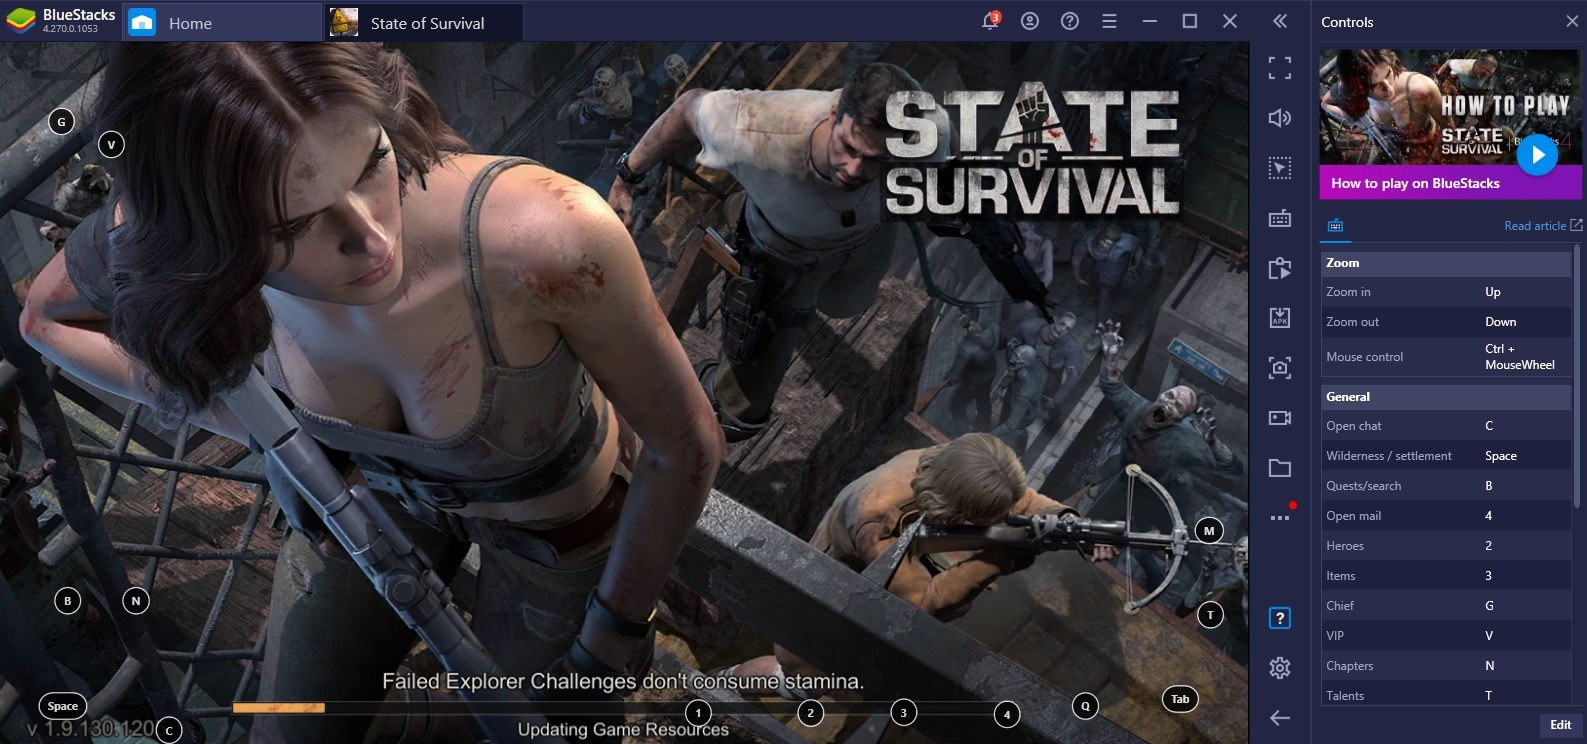 State of Survival Latest Update v1.9.130 Explained – International Women's Day Events